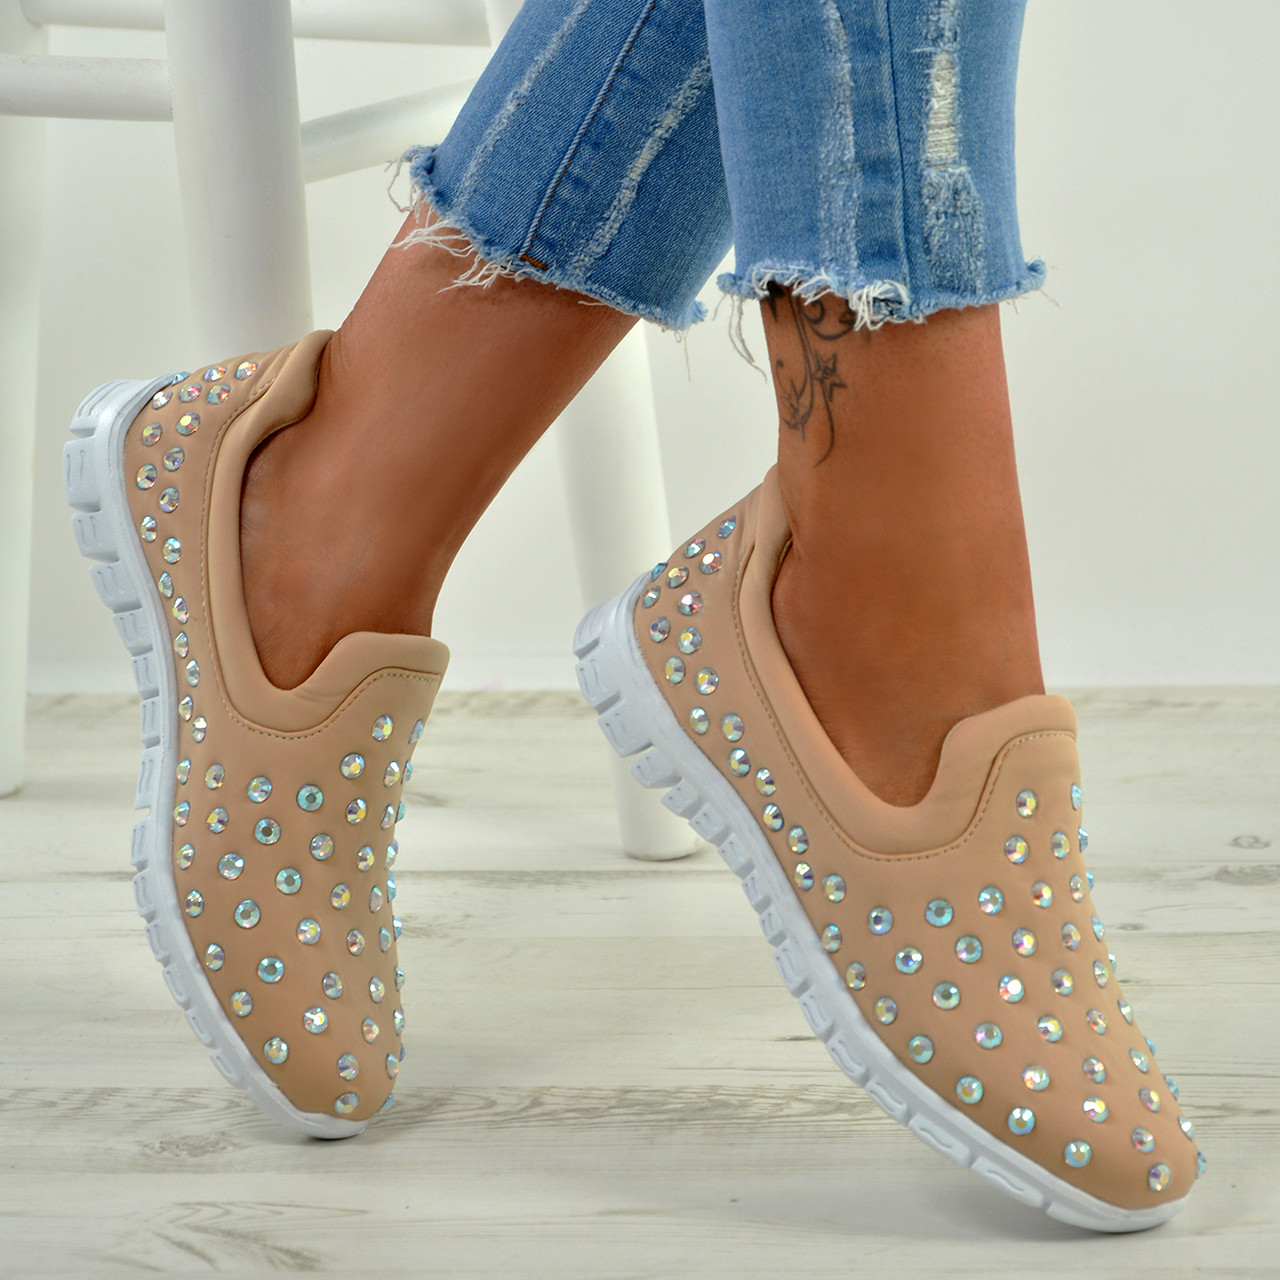 New Womens Slip On Trainers Ladies Studded Low Heel Flats Running Shoes Size Uk